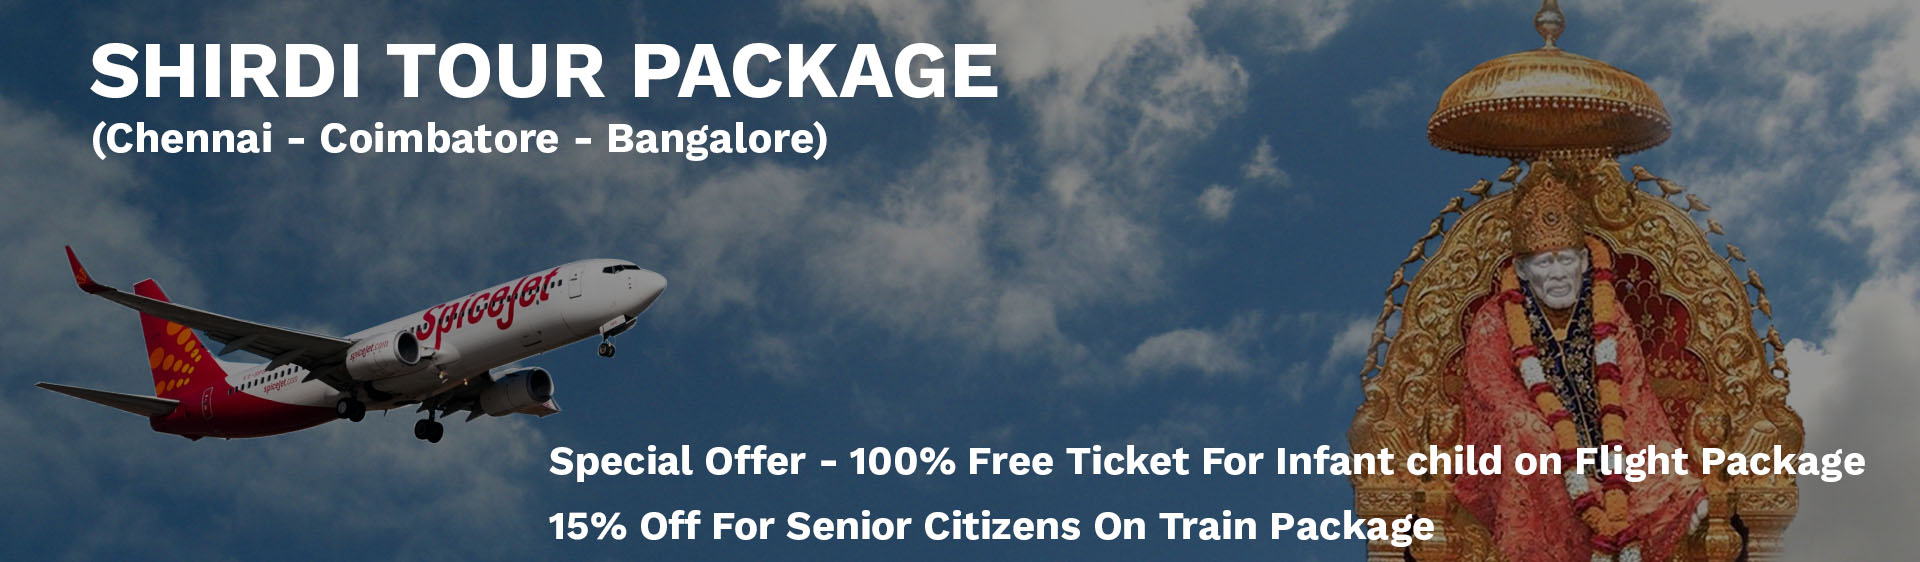 Shirdi flight package from Bangalore, Shirdi flight package from chennai, coimbatore to kasi flight package